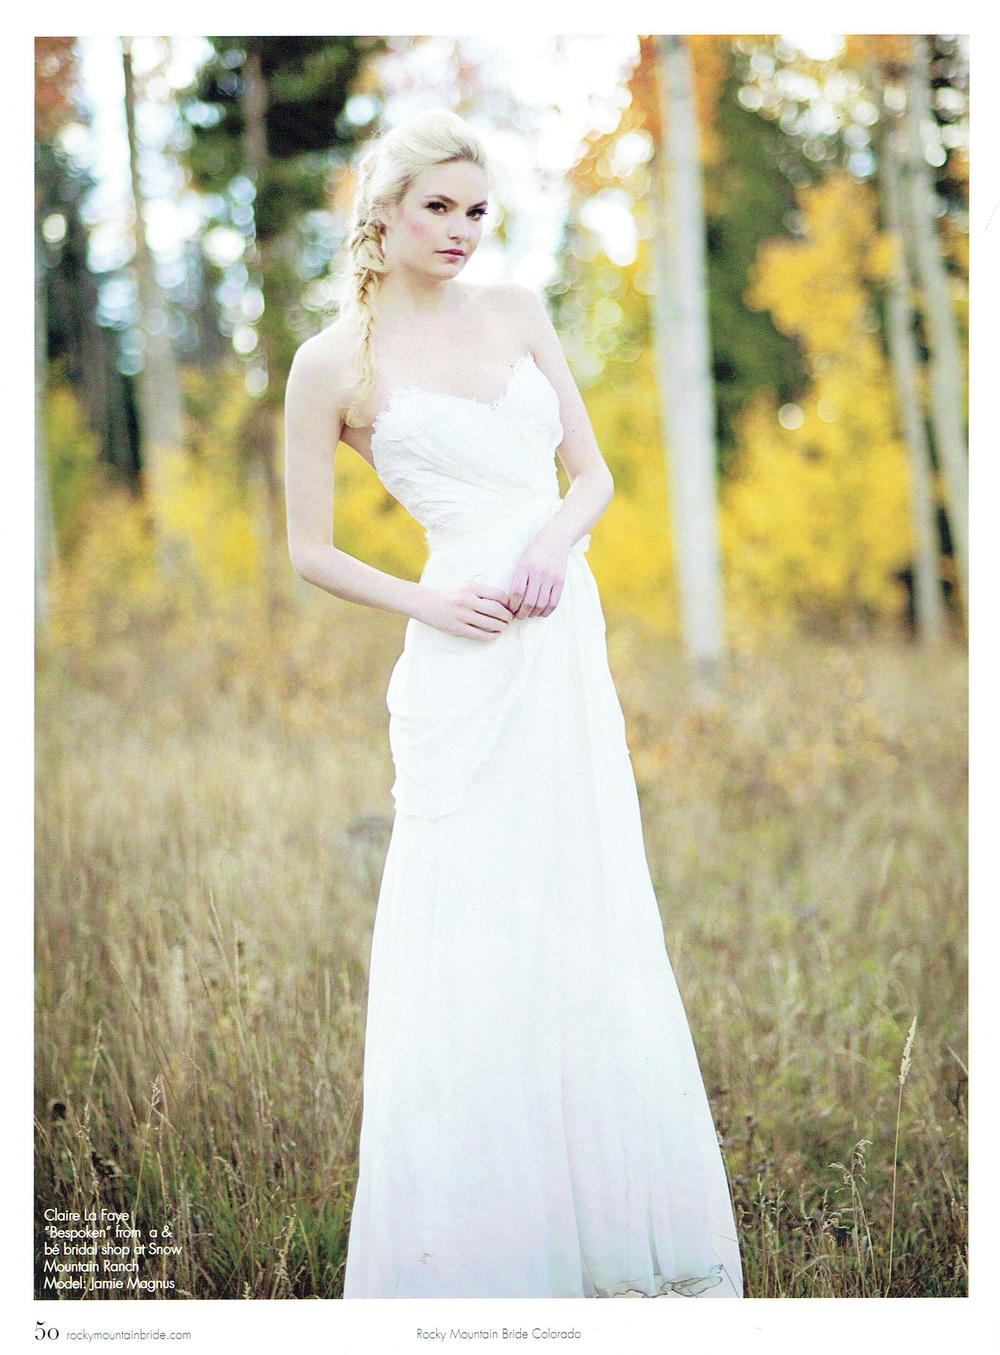 Rocky Mountain Bride Colorado - Fall 2014